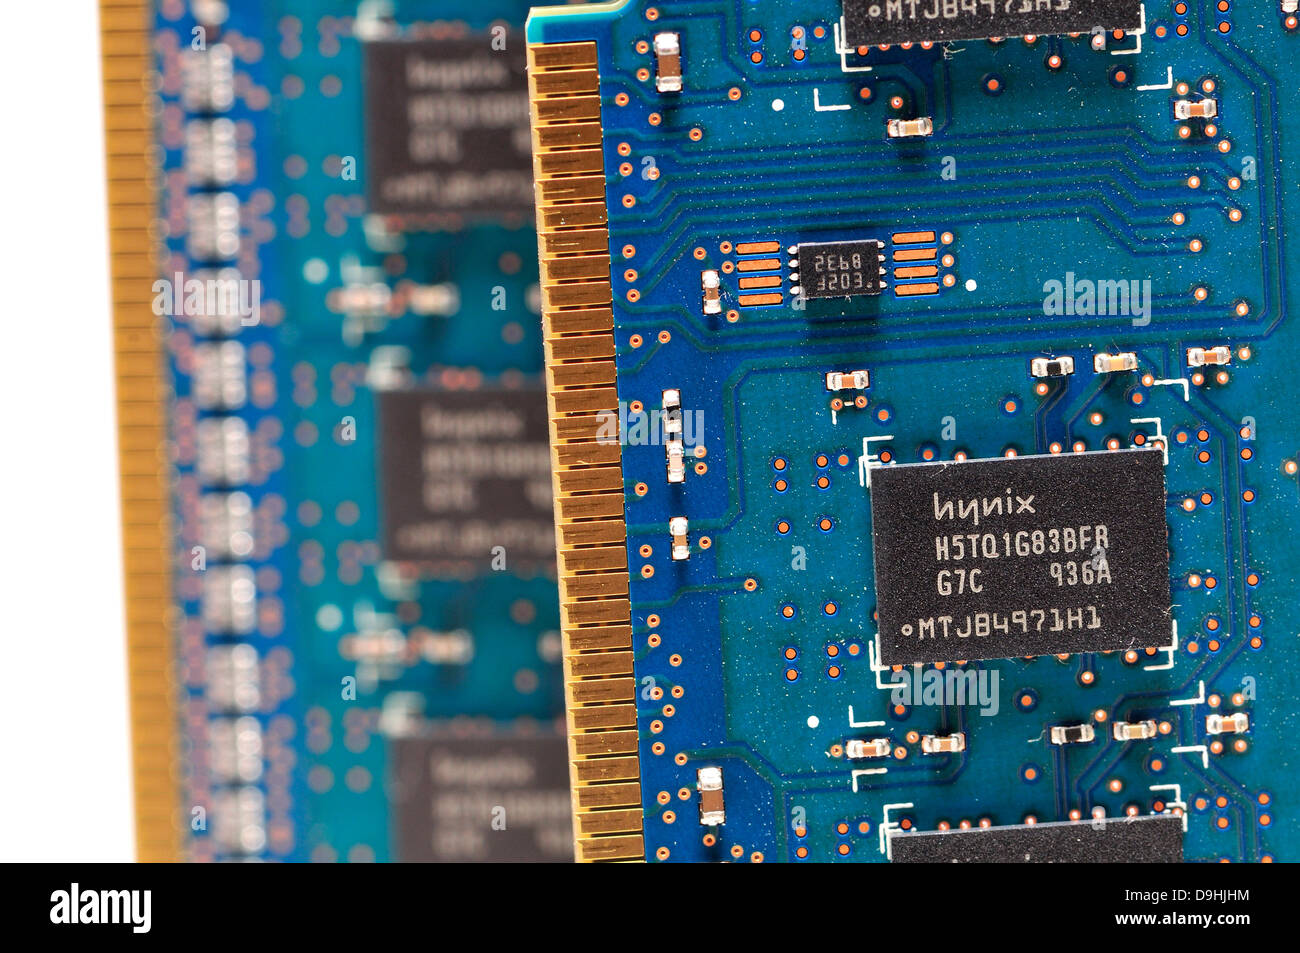 Computer memory modules for extra RAM - Stock Image